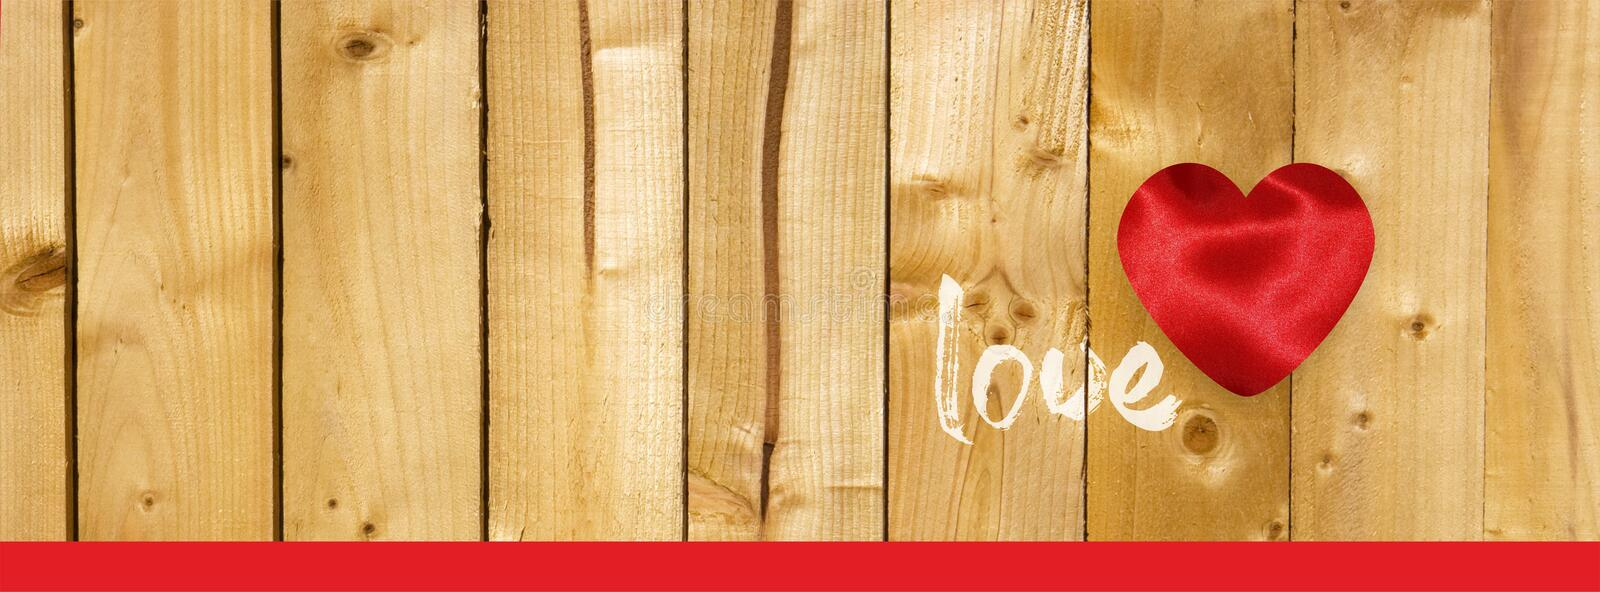 Valentine Facebook cover with hearts on  wooden planks background stock illustration